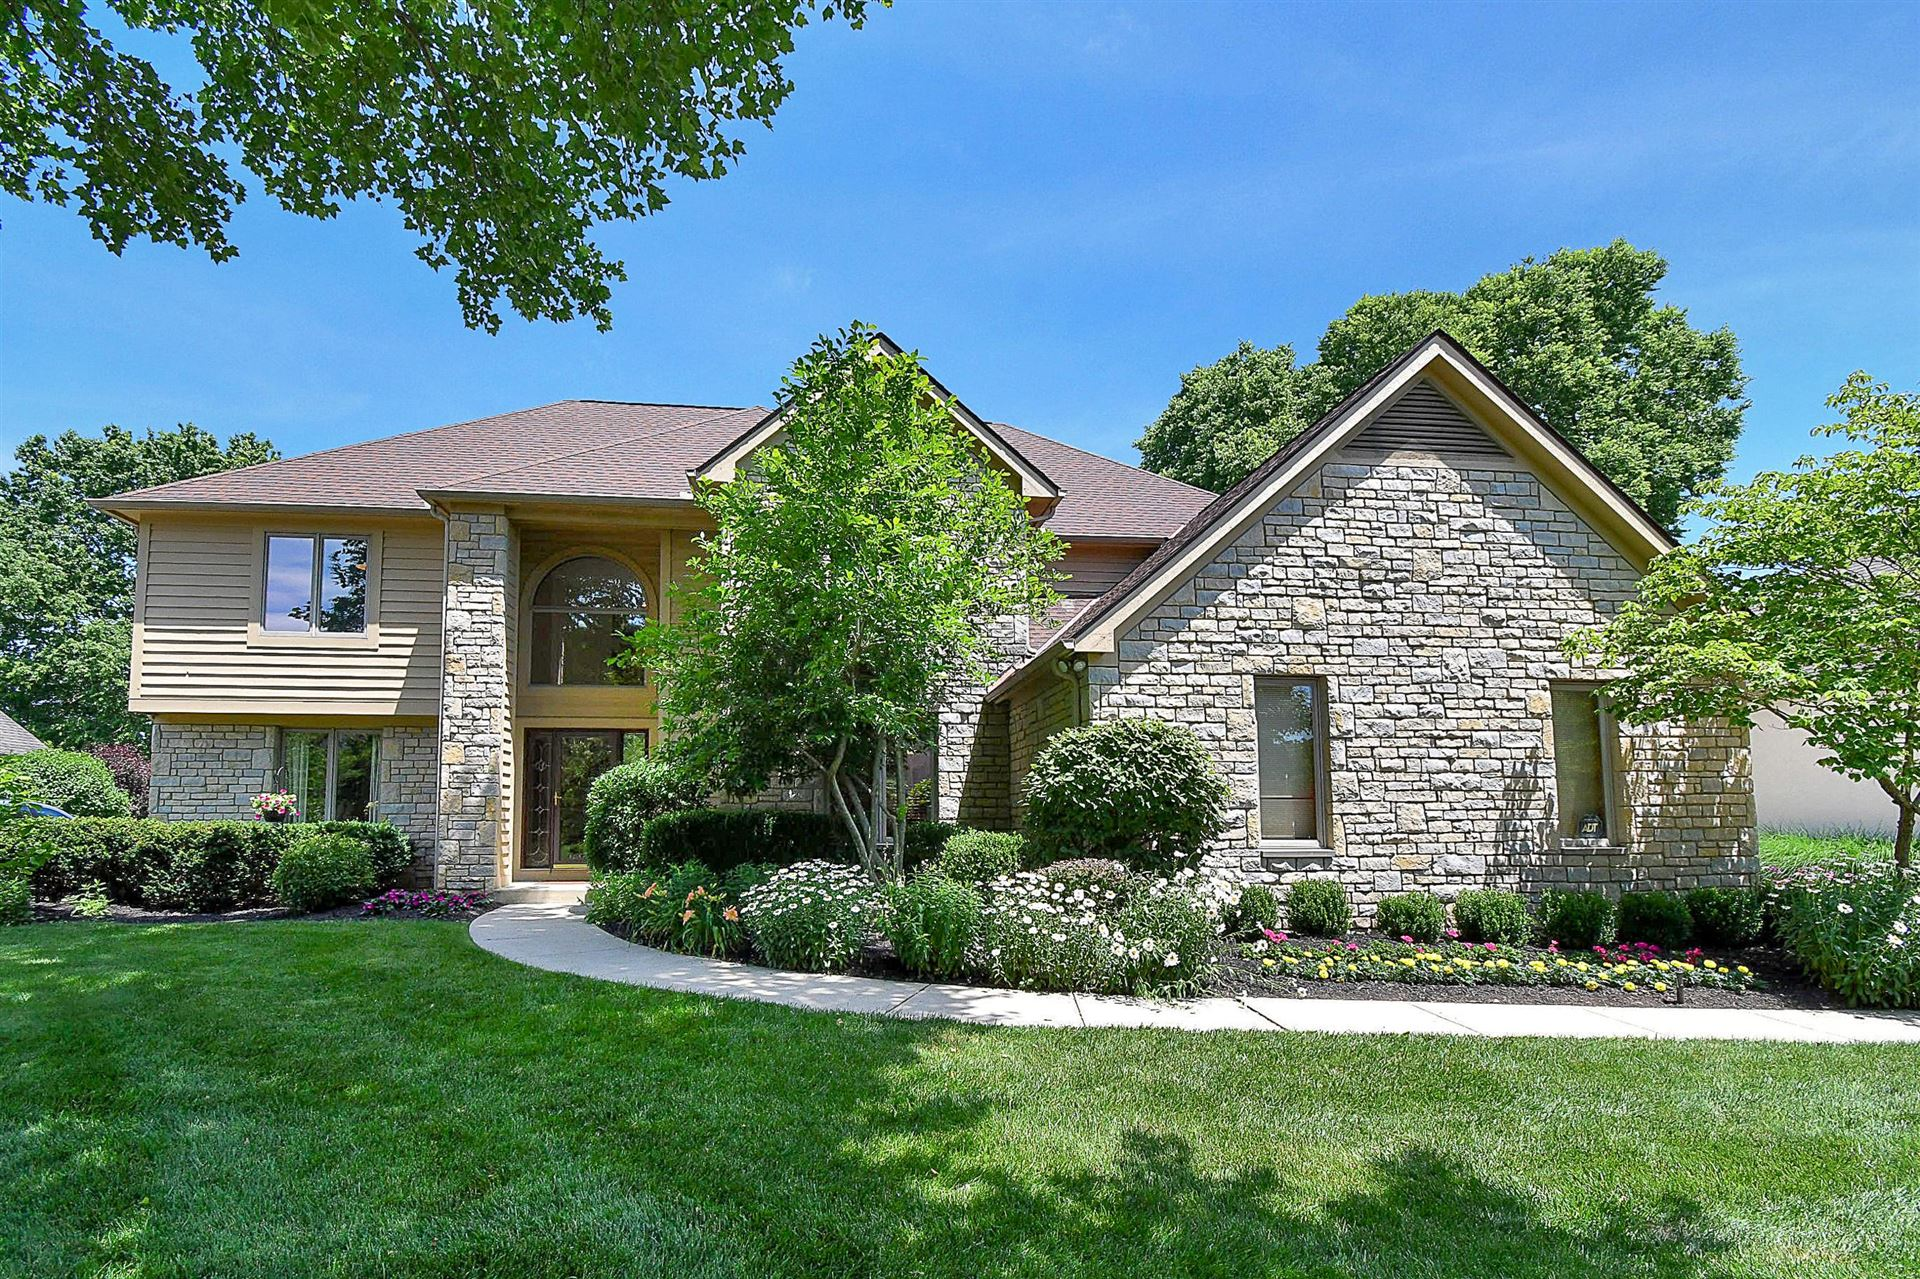 648 Crossing Creek S, Gahanna, OH 43230 - #: 220022356